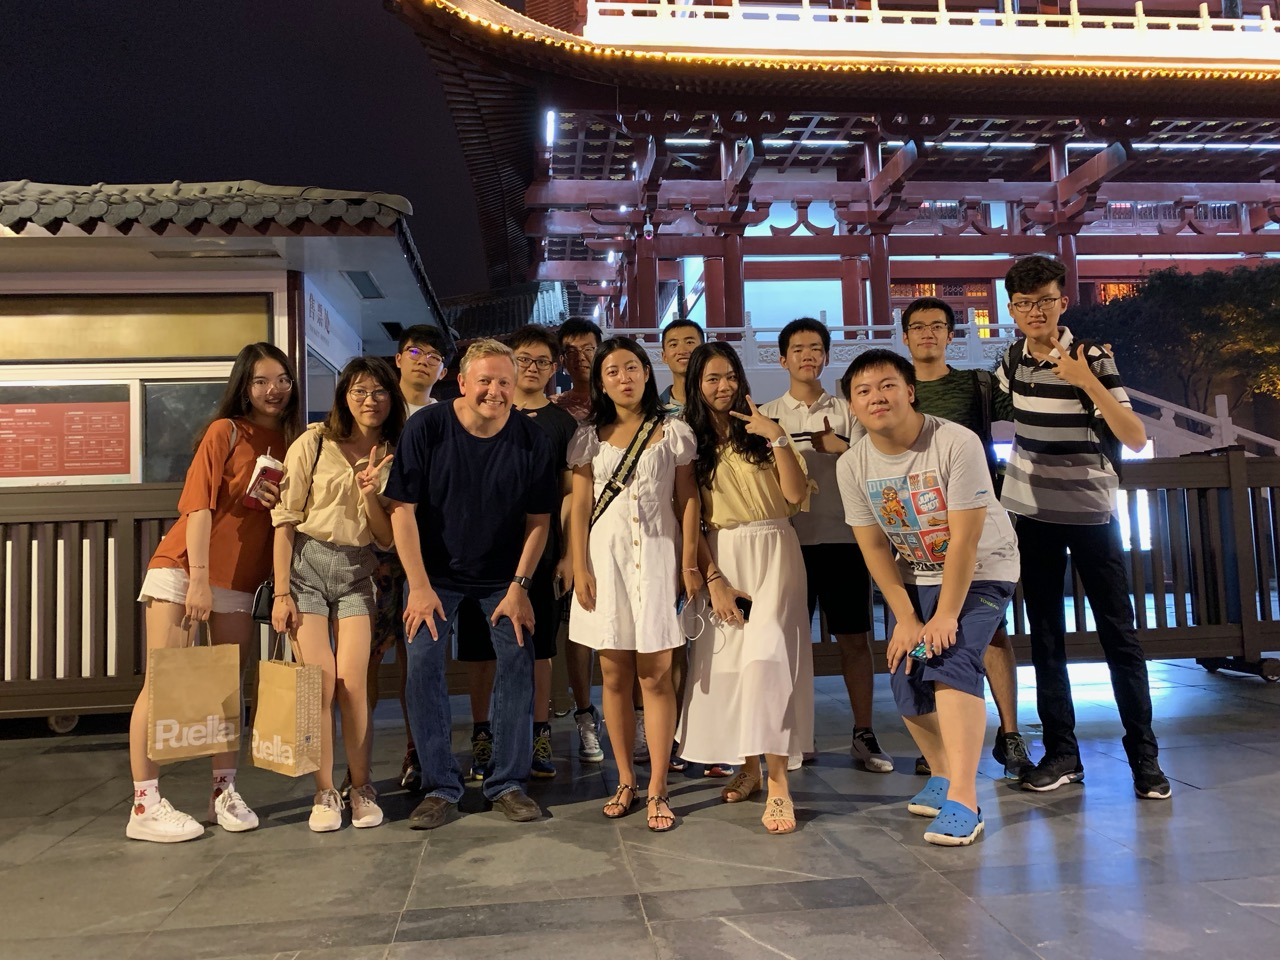 A brief nighttime riverside walk with some DKU students who were in Changsha for a special project. The young woman in the white dress in the center, Lisa Da, is a native of Changsha.